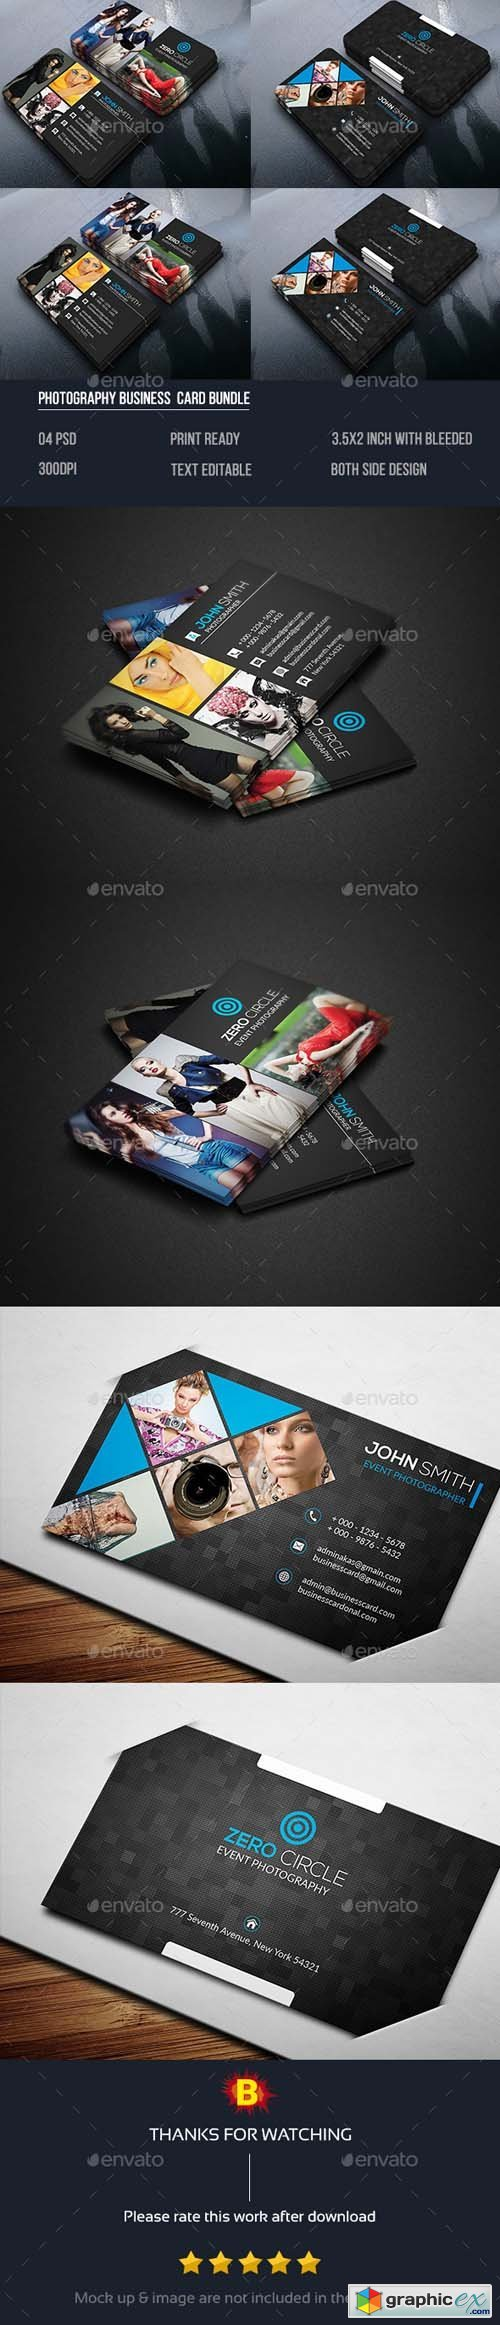 Photography Business Card Bundle 14493705